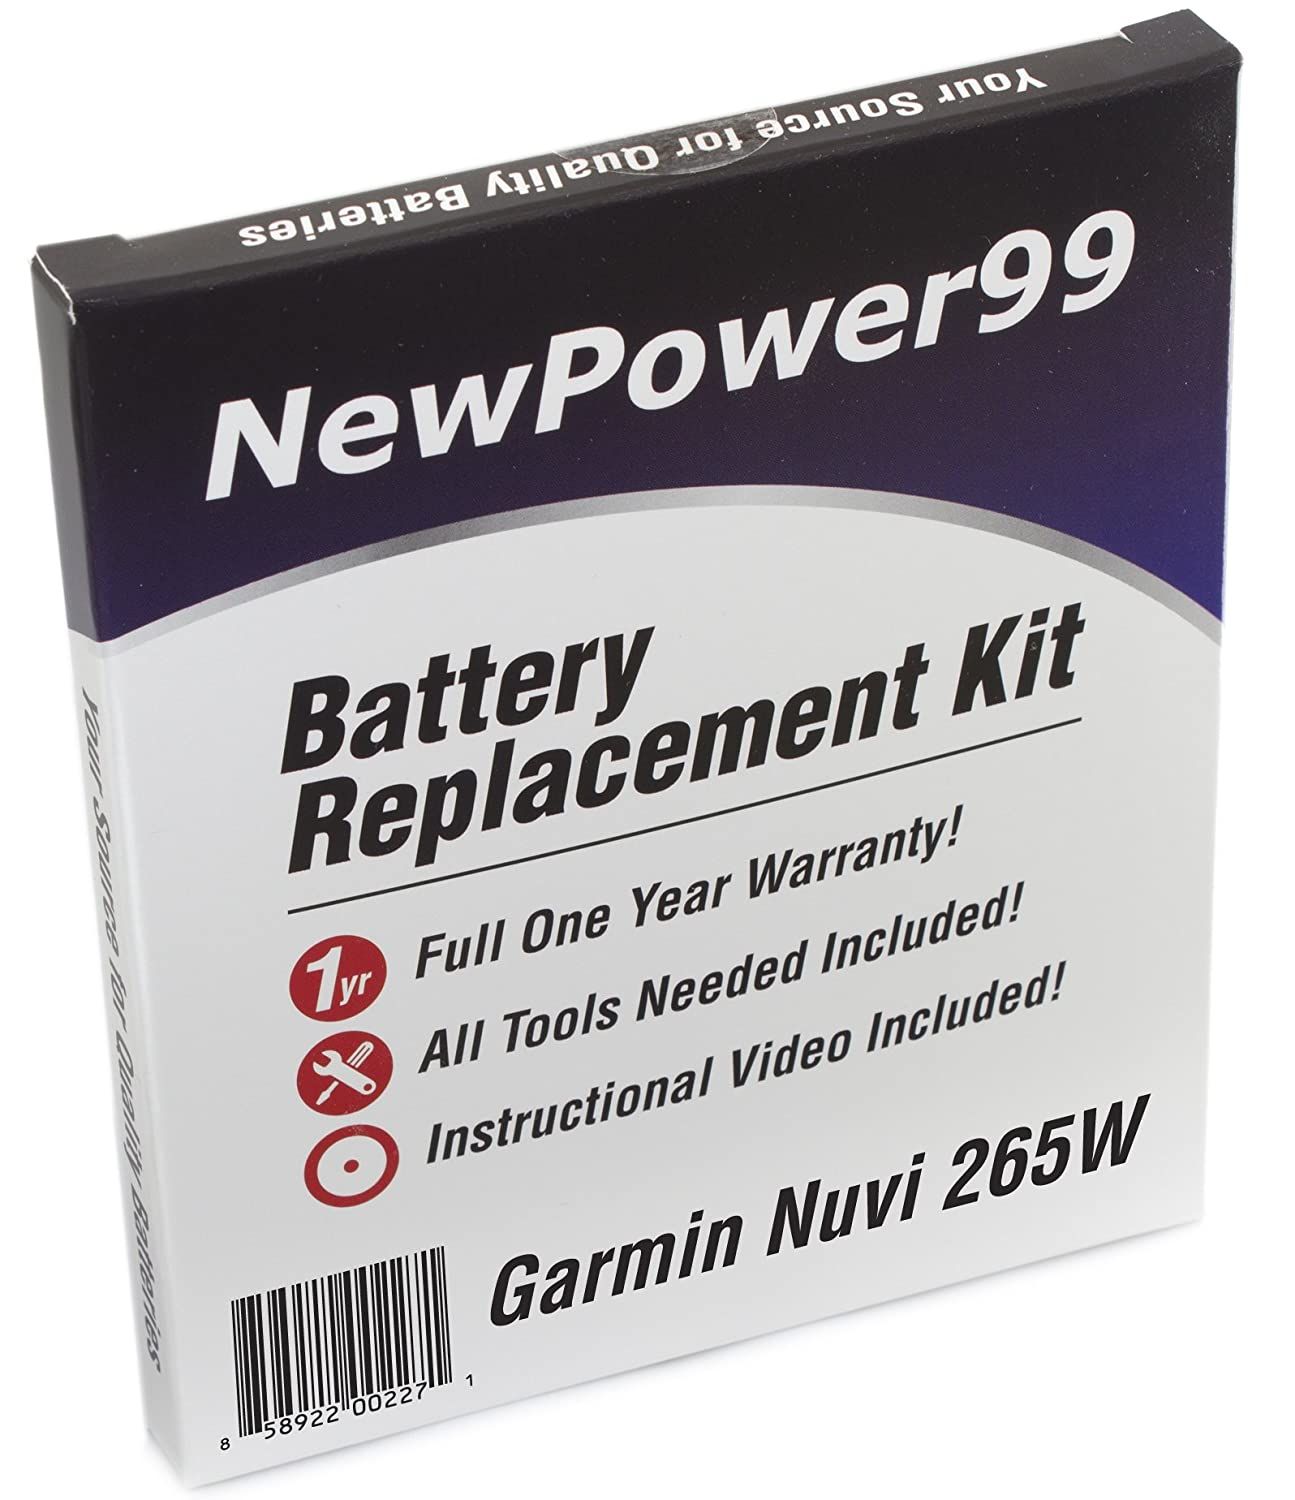 Amazon.com: Battery Replacement Kit for Garmin Nuvi 265W with Installation  Video, Tools, and Extended Life Battery.: Cell Phones & Accessories